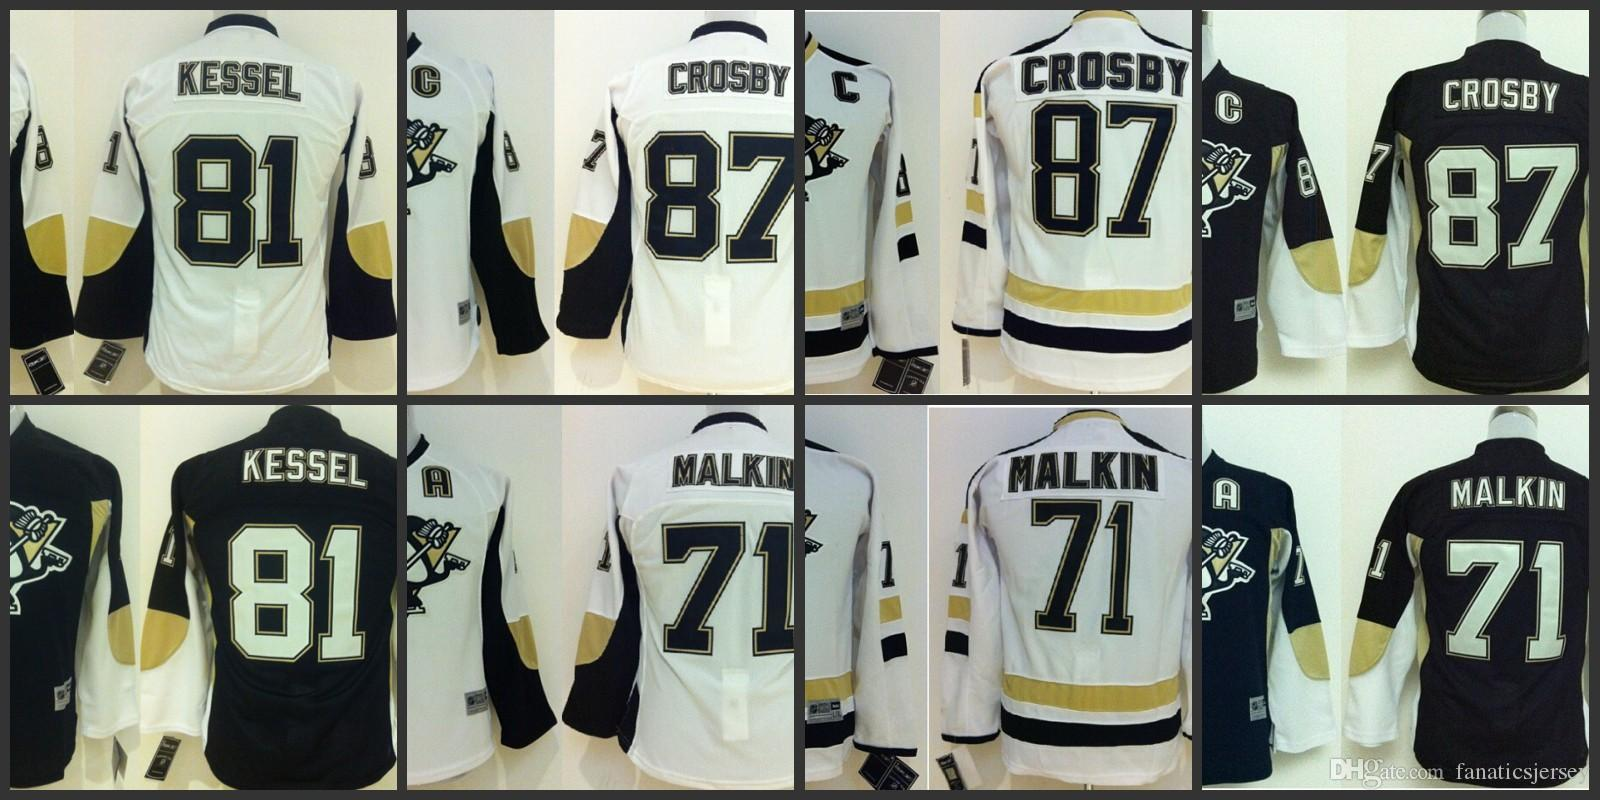 a0e4193eeed ... 2017 Pittsburgh Penguins Nhl Kids Jersey White Black Hockey Jersey 87  Sidney crosby 81 Phil kessel Pittsburgh Penguins 71 Evgeni Malkin ...